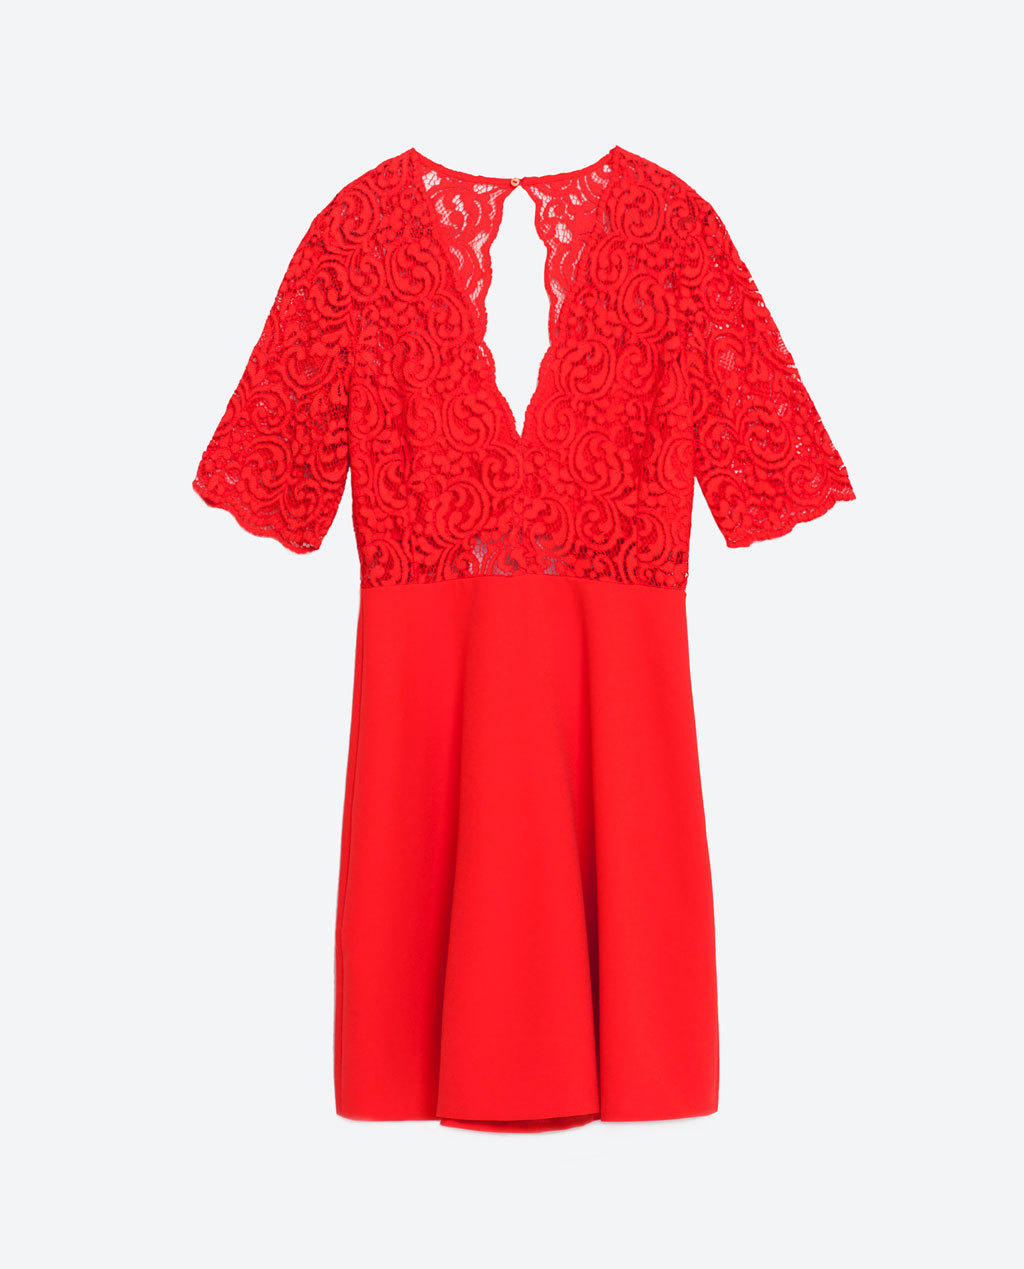 Lace Skater Dress - length: mid thigh; neckline: plunge; predominant colour: true red; occasions: evening; fit: fitted at waist & bust; style: fit & flare; fibres: polyester/polyamide - 100%; sleeve length: 3/4 length; sleeve style: standard; texture group: lace; pattern type: fabric; pattern size: standard; pattern: patterned/print; embellishment: lace; season: s/s 2016; wardrobe: event